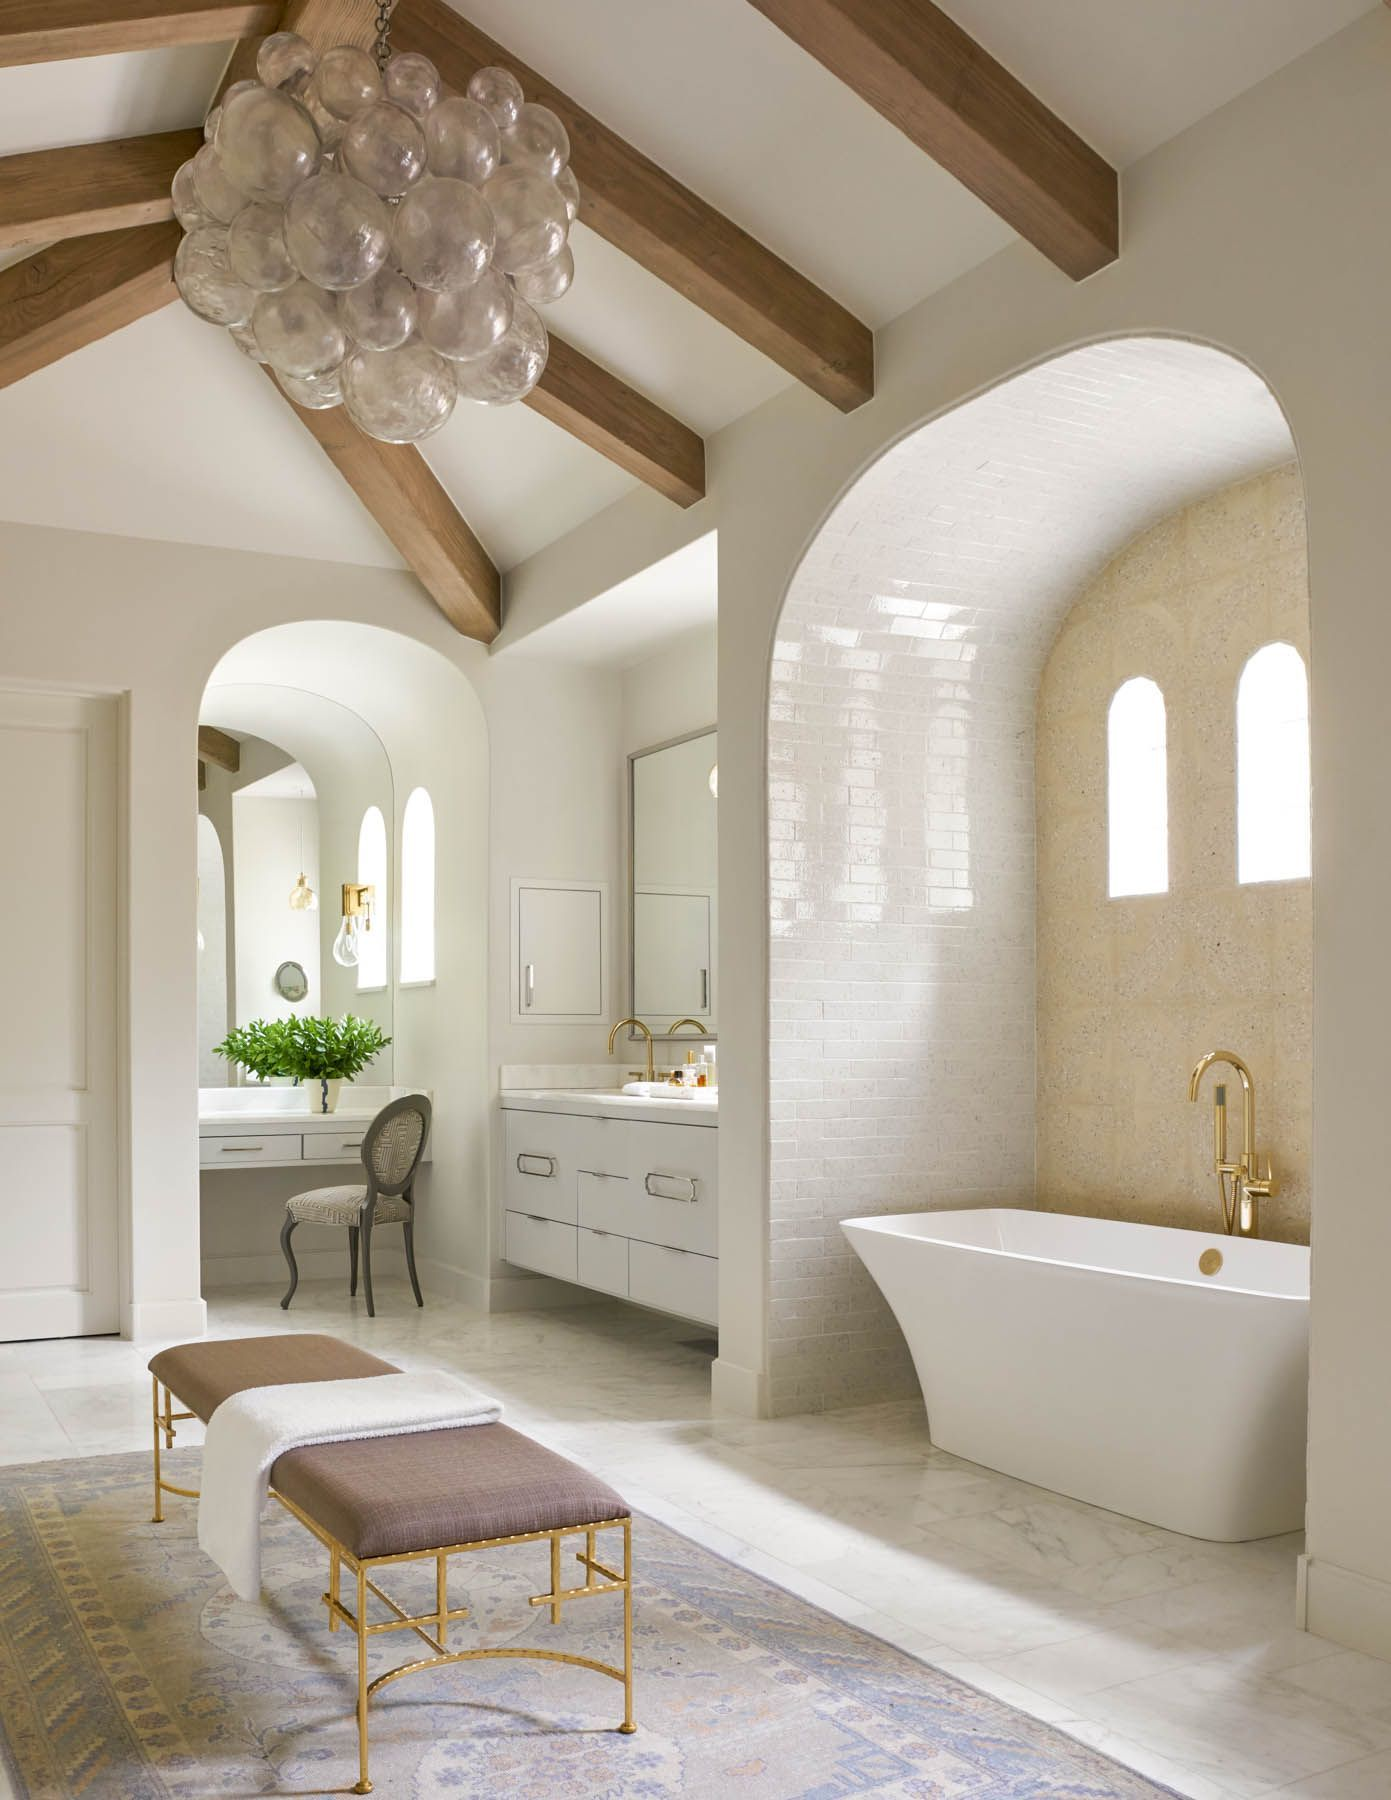 Pin By Gail Macke On Bathrooms - Pinterest - Alcove,